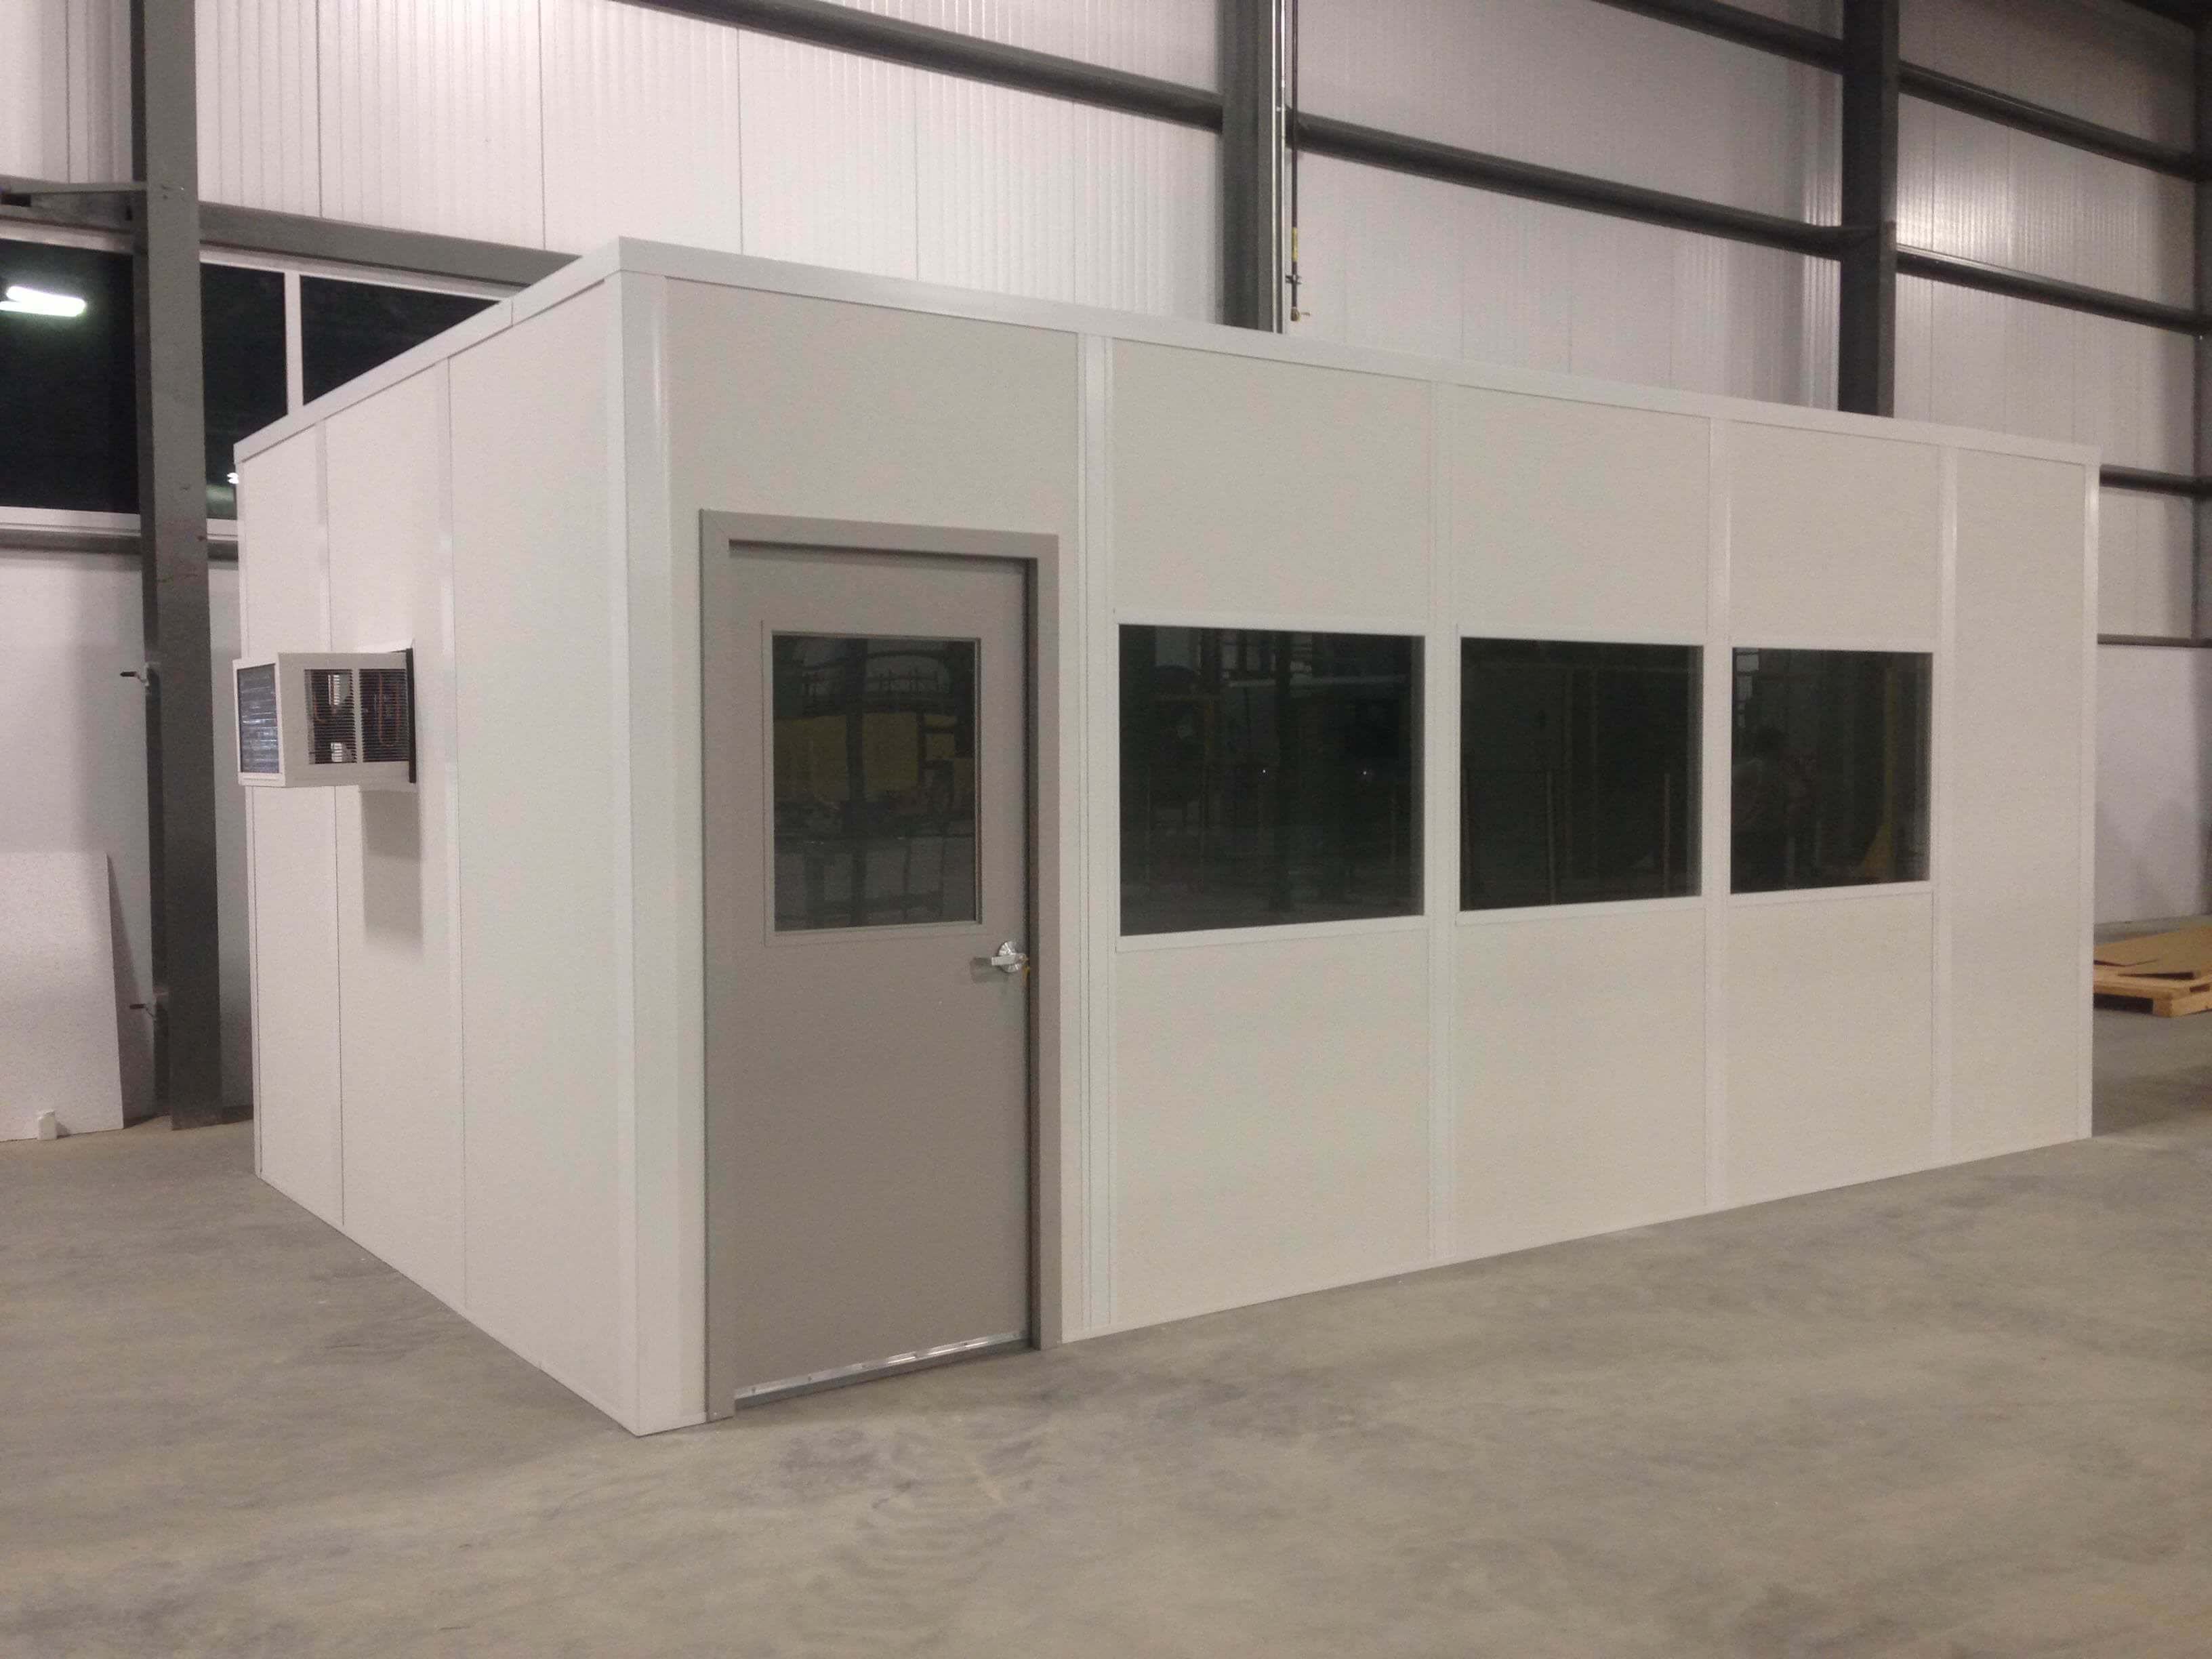 prefabricated office space. prefabricated modular site offices that can be quick shipped and set in place are an economical answer to many office space problems your factory faces i